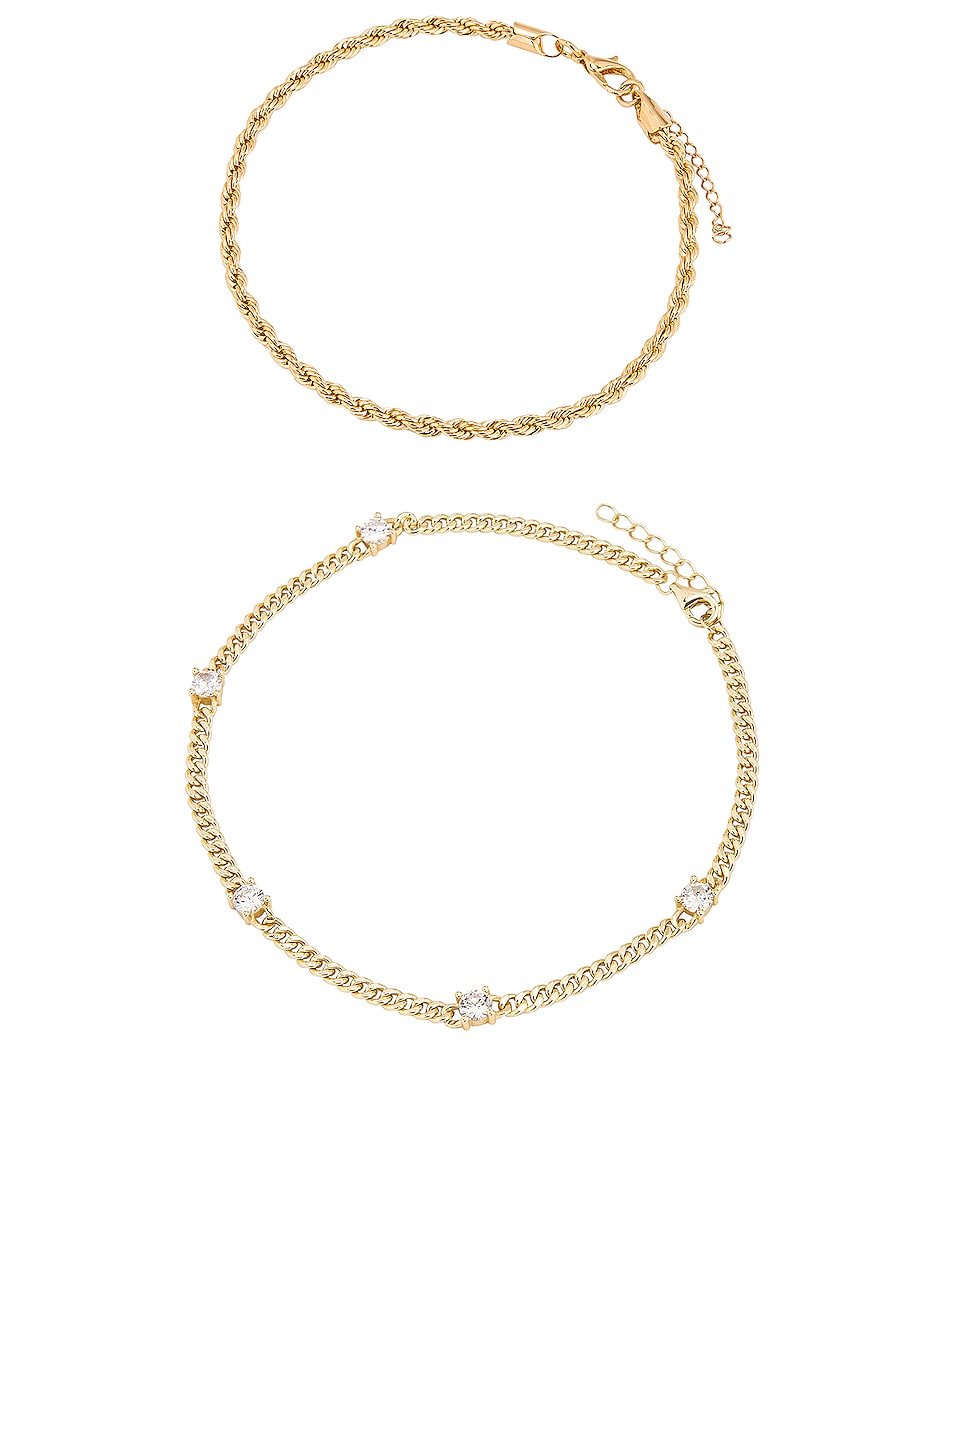 Image 1 of Jordan Road Jewelry The Ivy Anklet Set in Gold